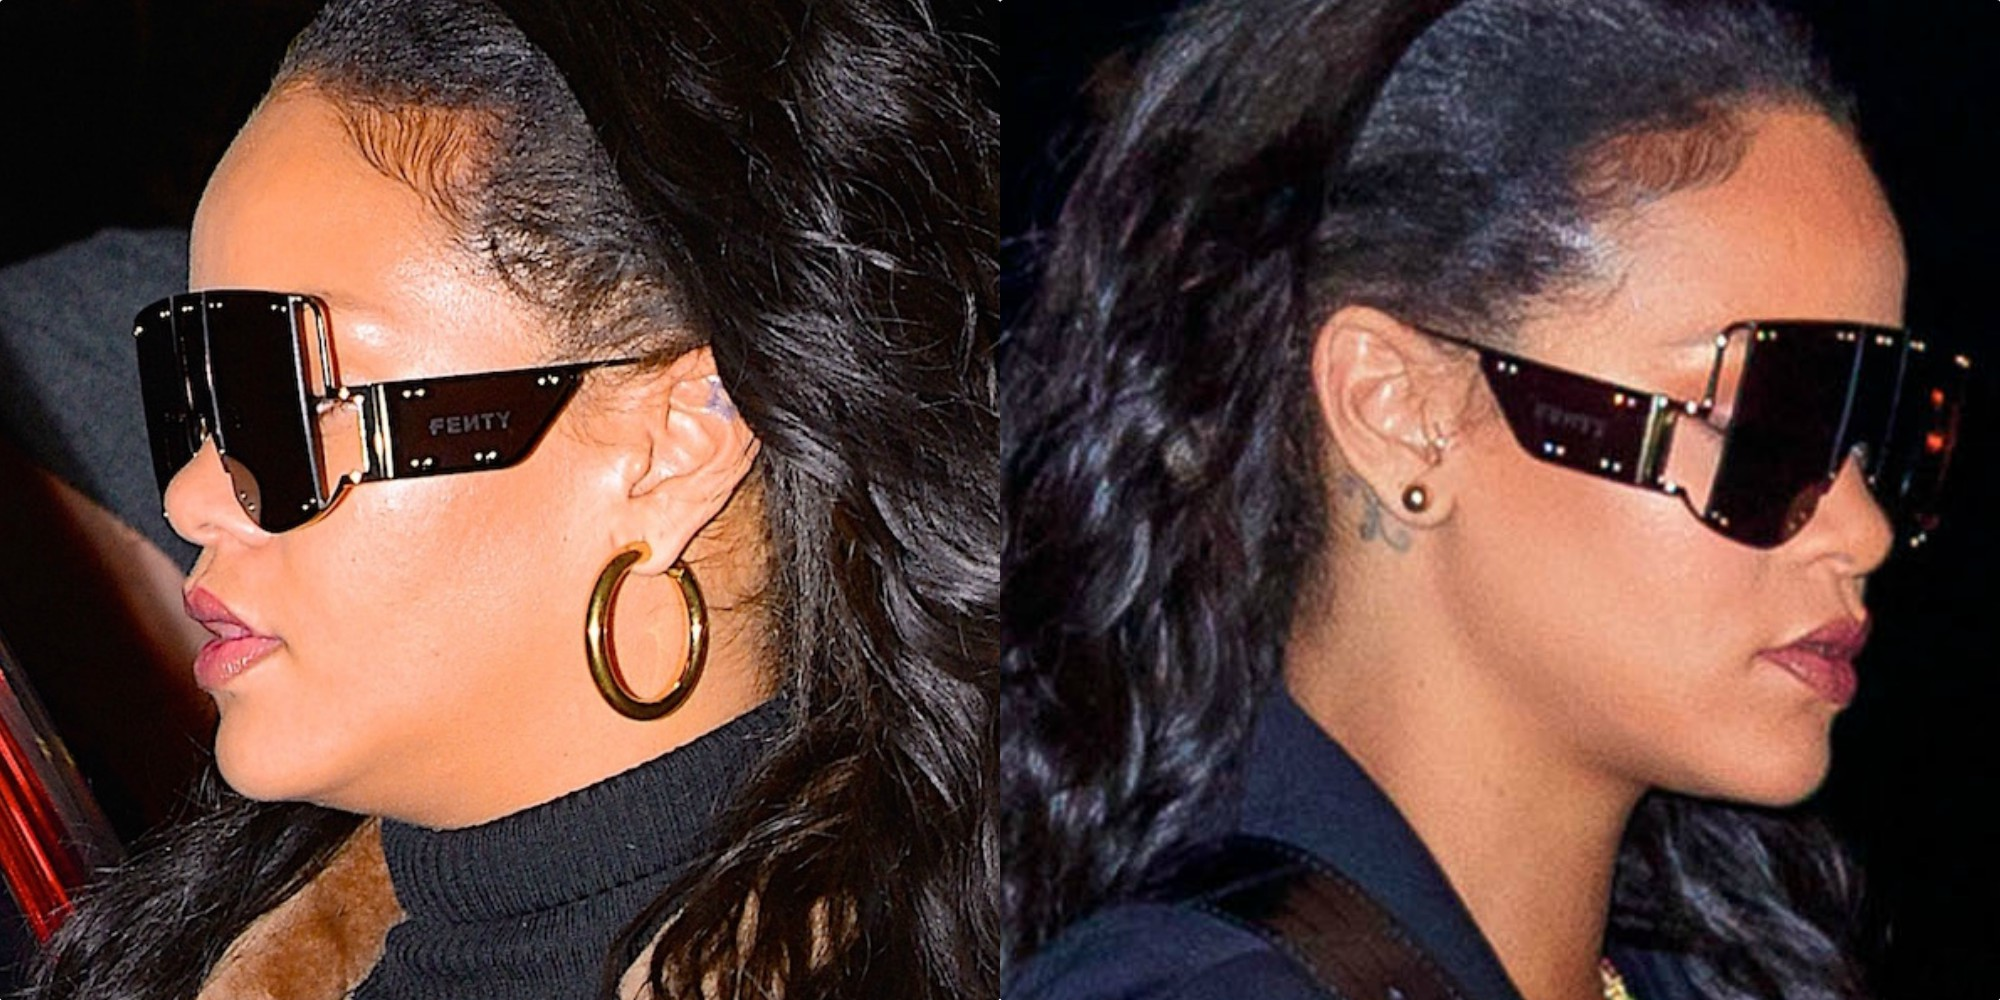 406a8c1154 Robert Kamau/GC Images/Jackson Lee/GC Images. And while the glasses Rihanna's  wearing ...